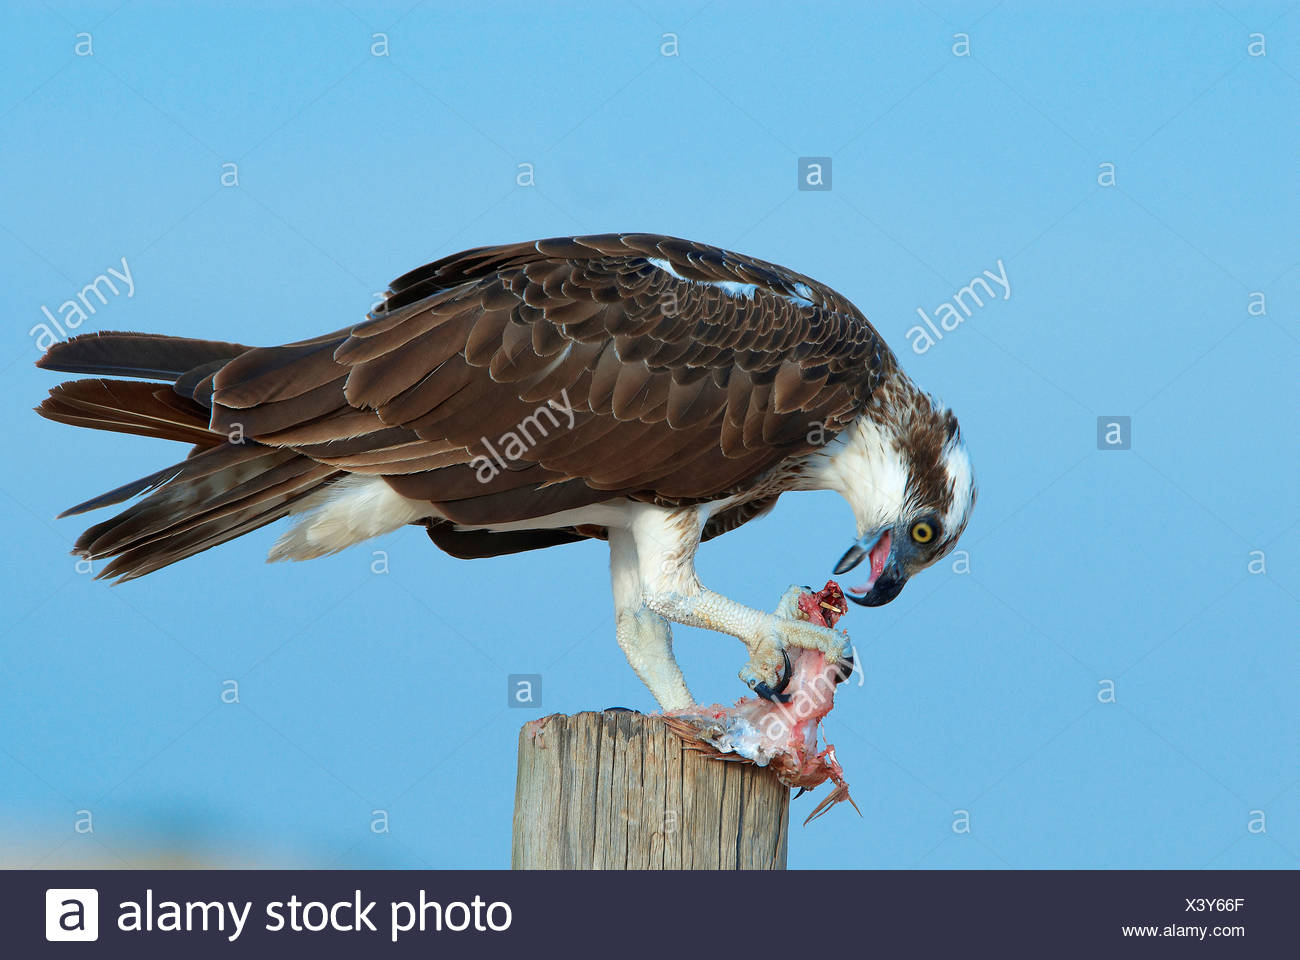 Eagle, Australia, Cabo Leveque, peces, animales, pájaros, Australia Occidental, presas, comer Imagen De Stock